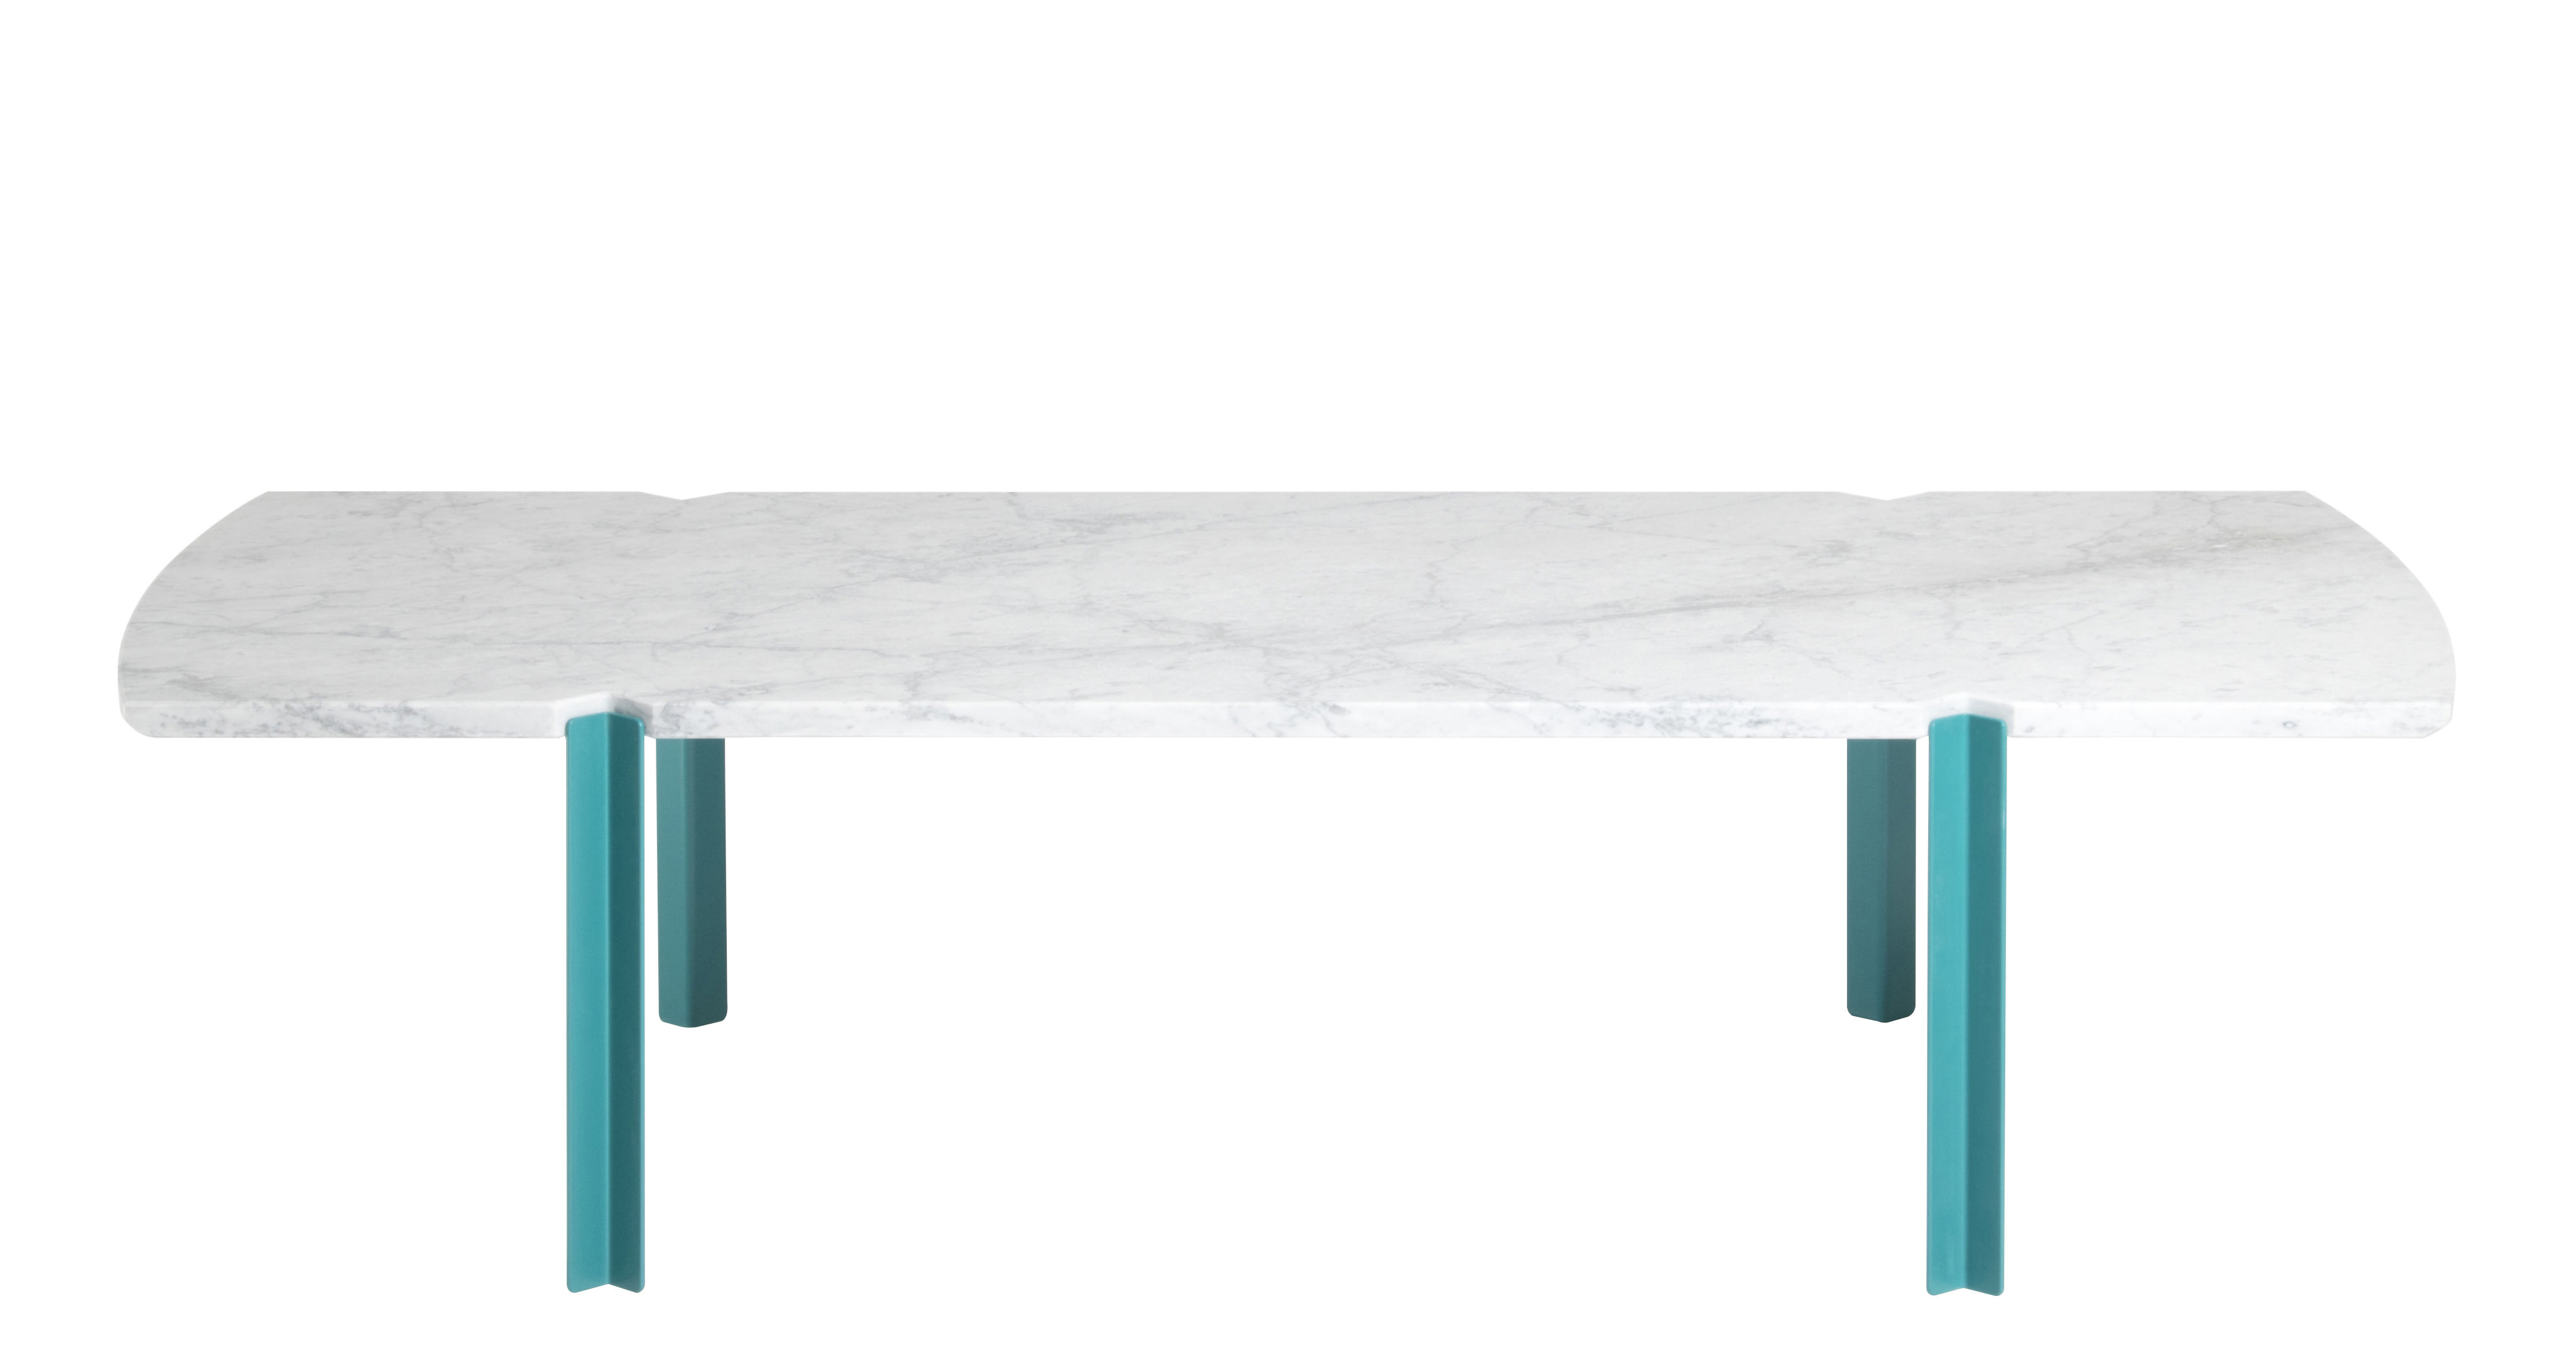 Furniture - Coffee Tables - Quattro Cantoni Coffee table - / Marble & steel - 130 x 60 cm by Objekto - Blue legs / Matt marble - Epoxy lacquered recycled steel, Matt brushed Carrara marble